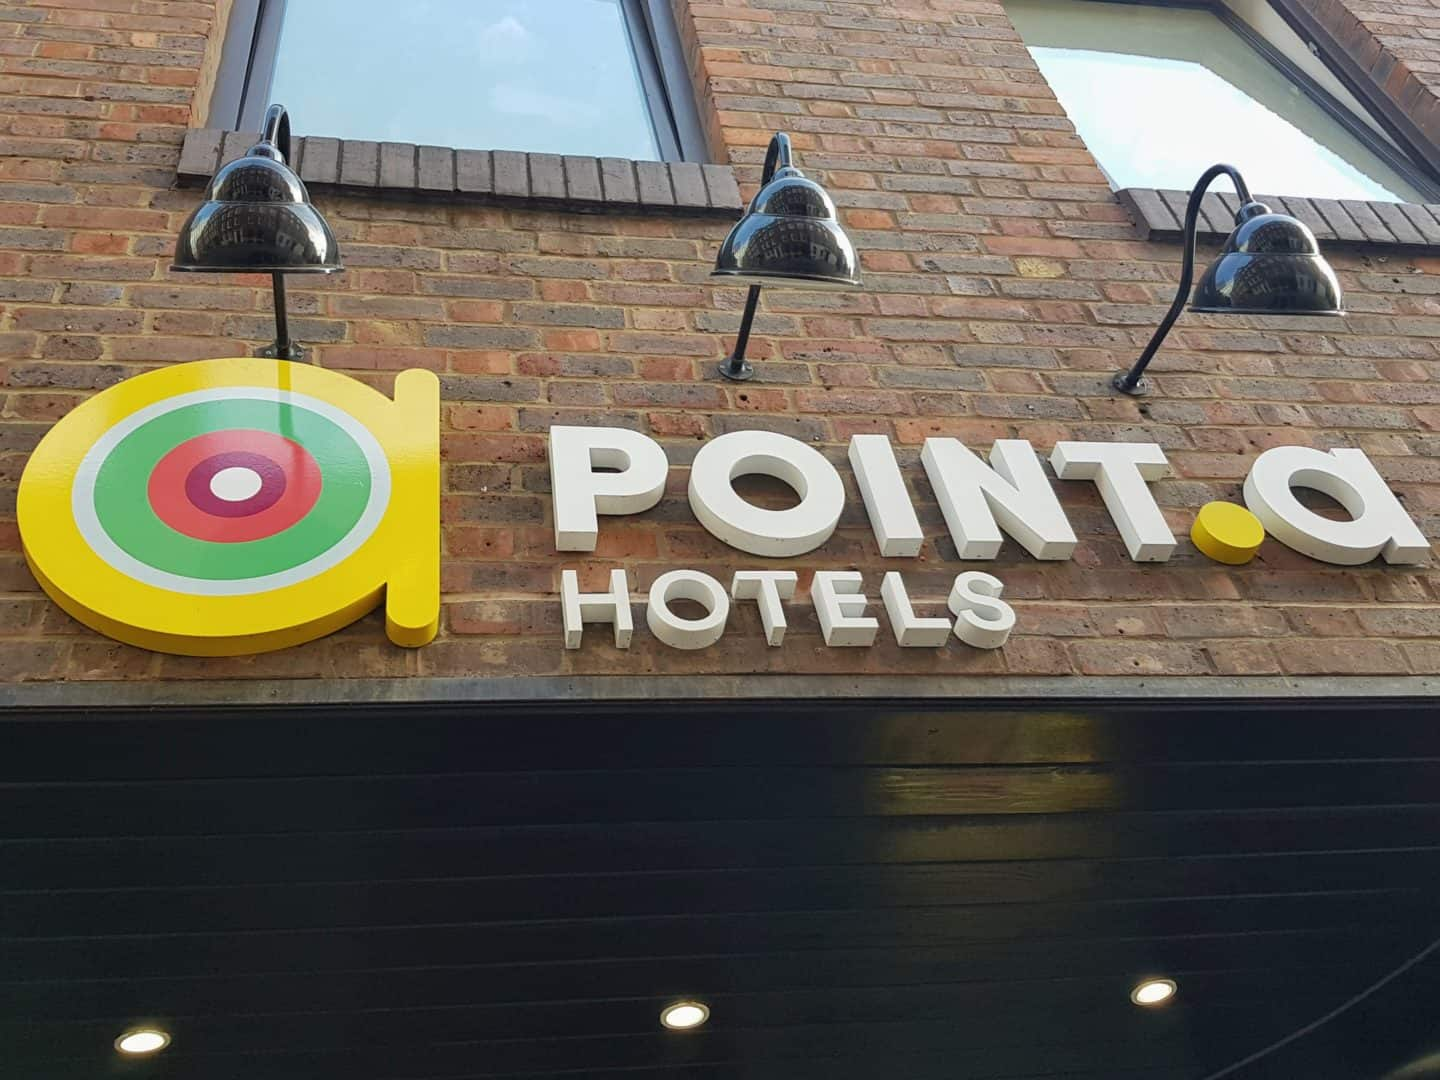 Point A Hotel sign